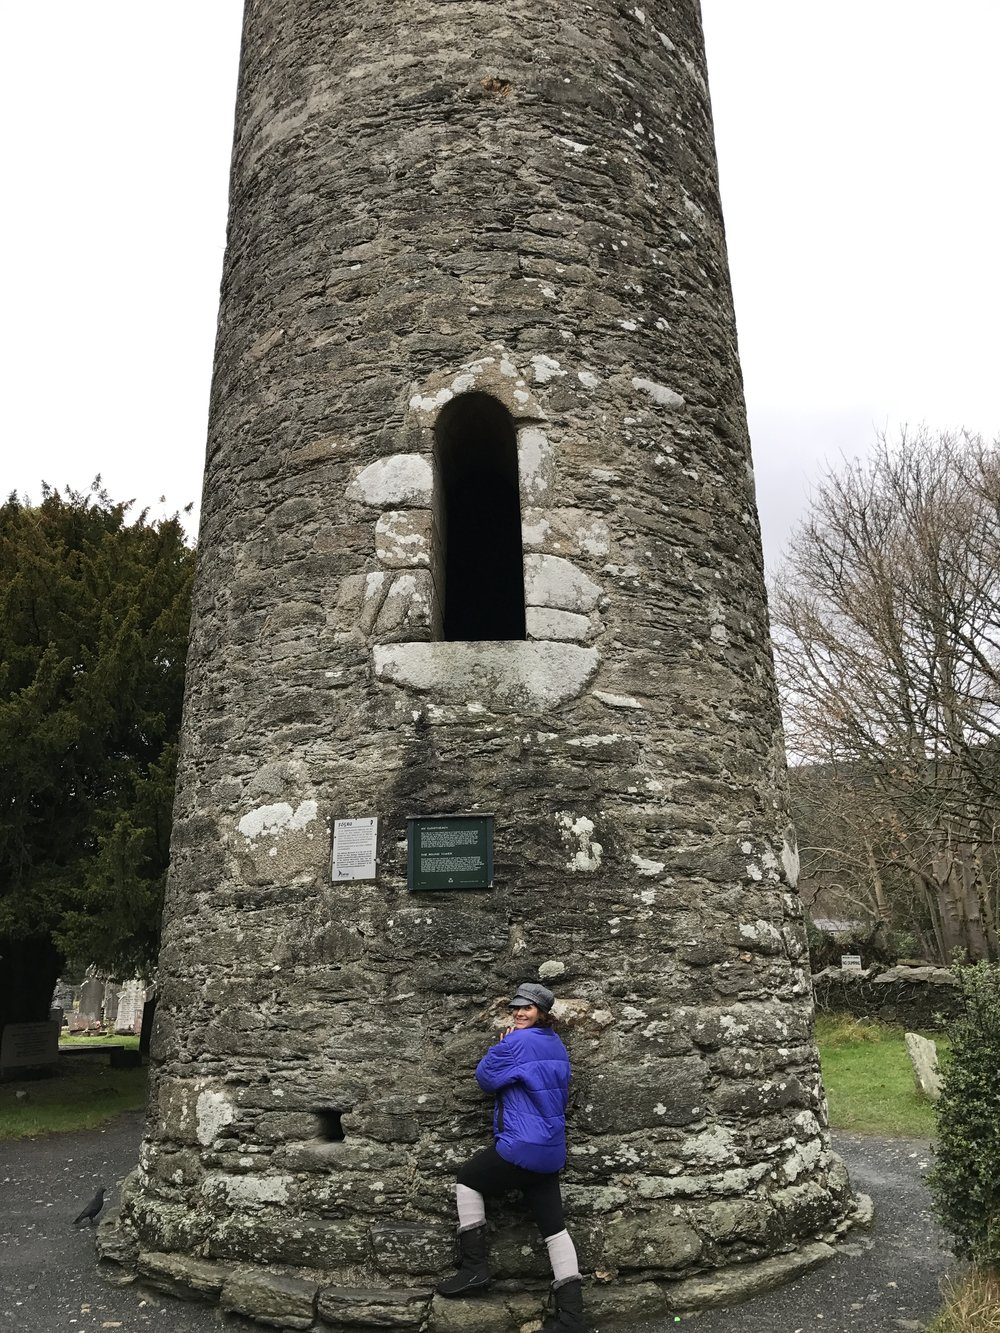 The entrance to the Round Tower was located some ten feet off of the ground to allow the monks a place of safe refuge in times of trouble.